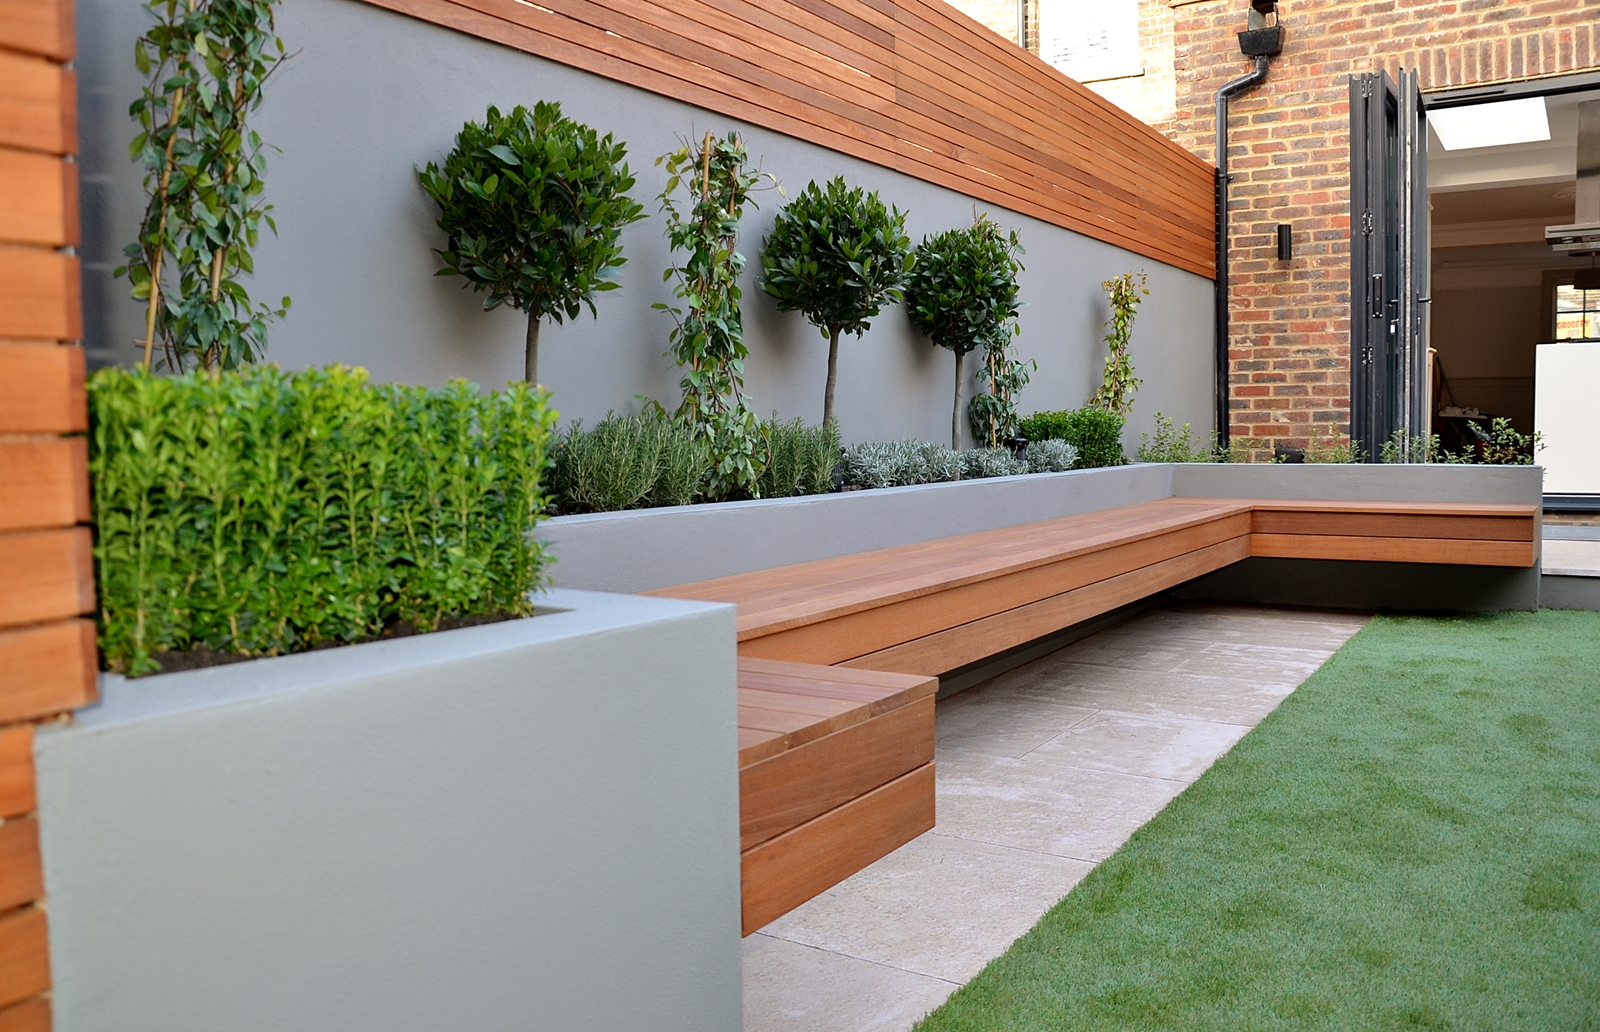 Top 25 Best Designer Gardens Modern Garden Design And - london garden design